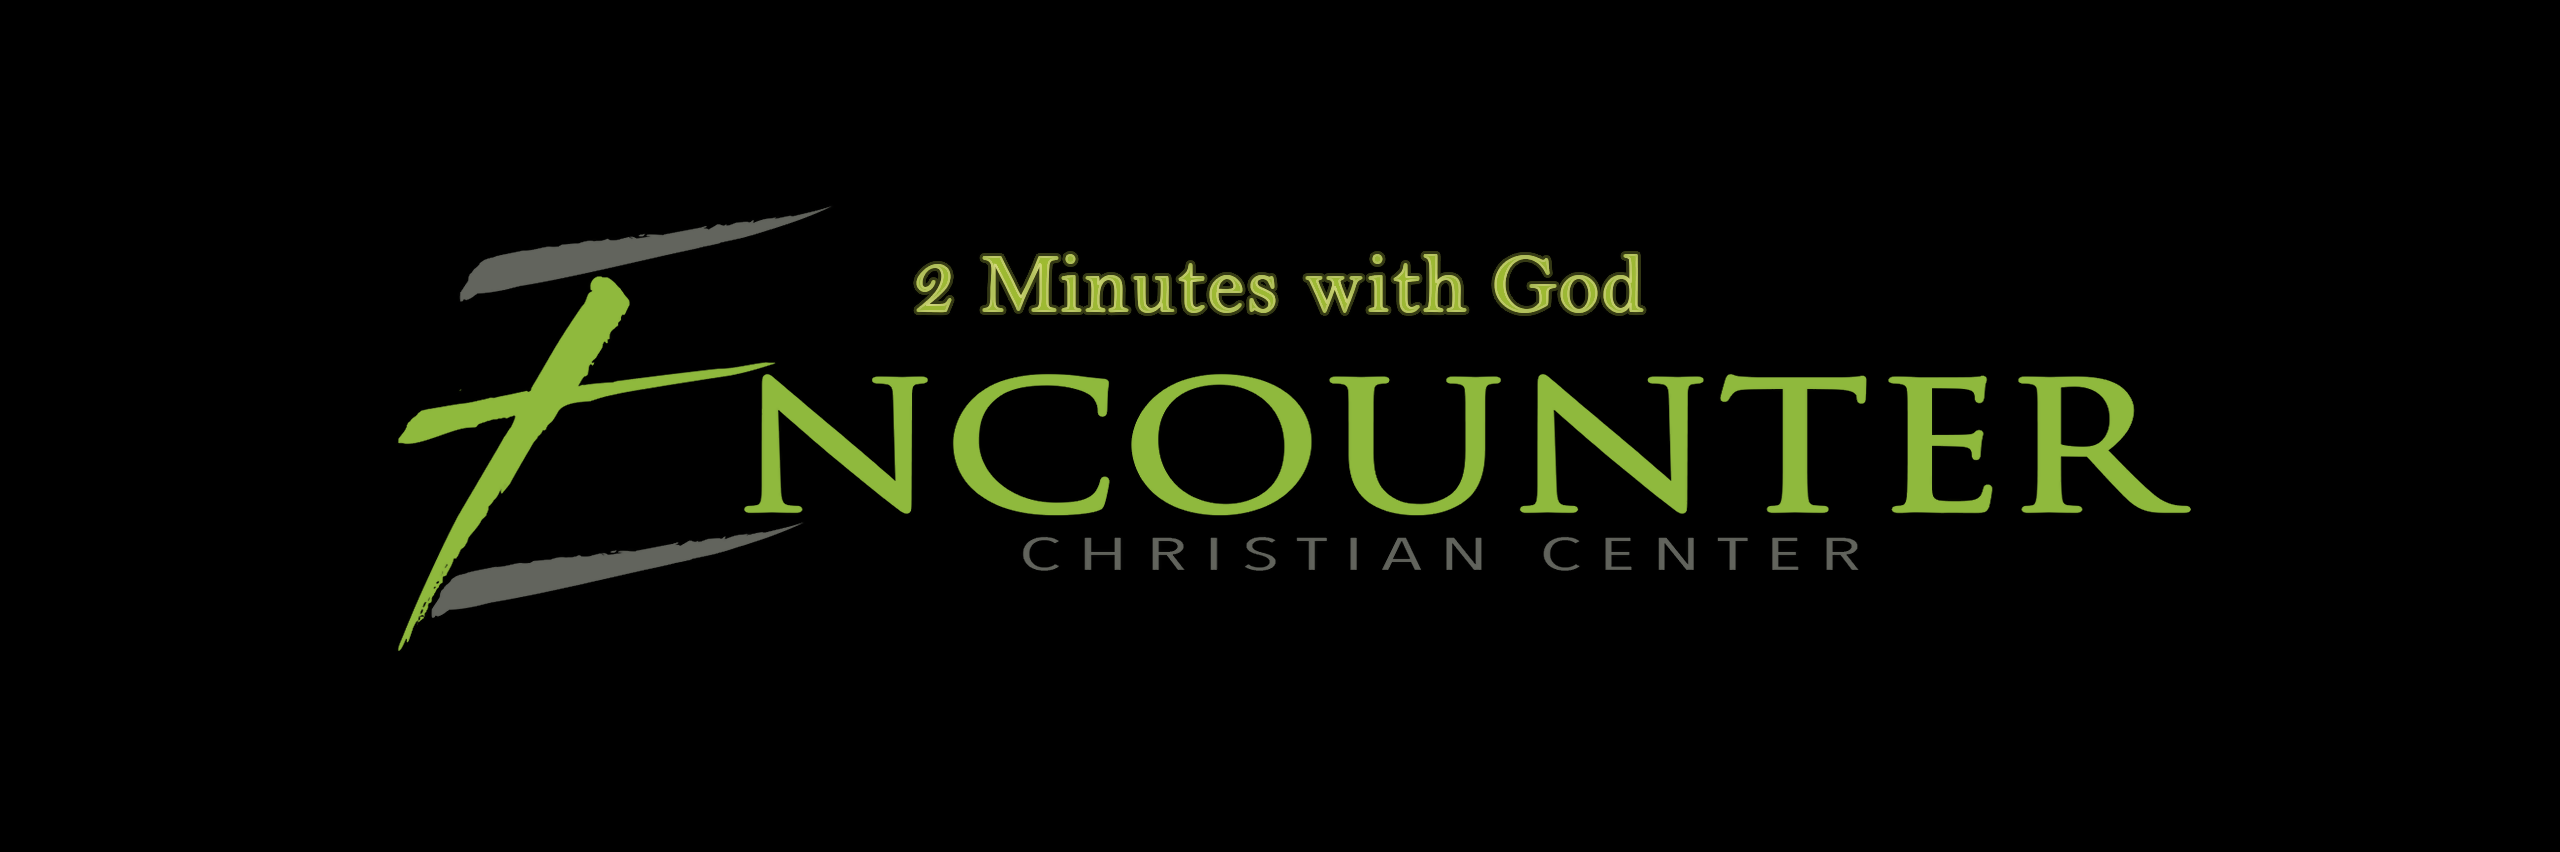 2 Minutes with God